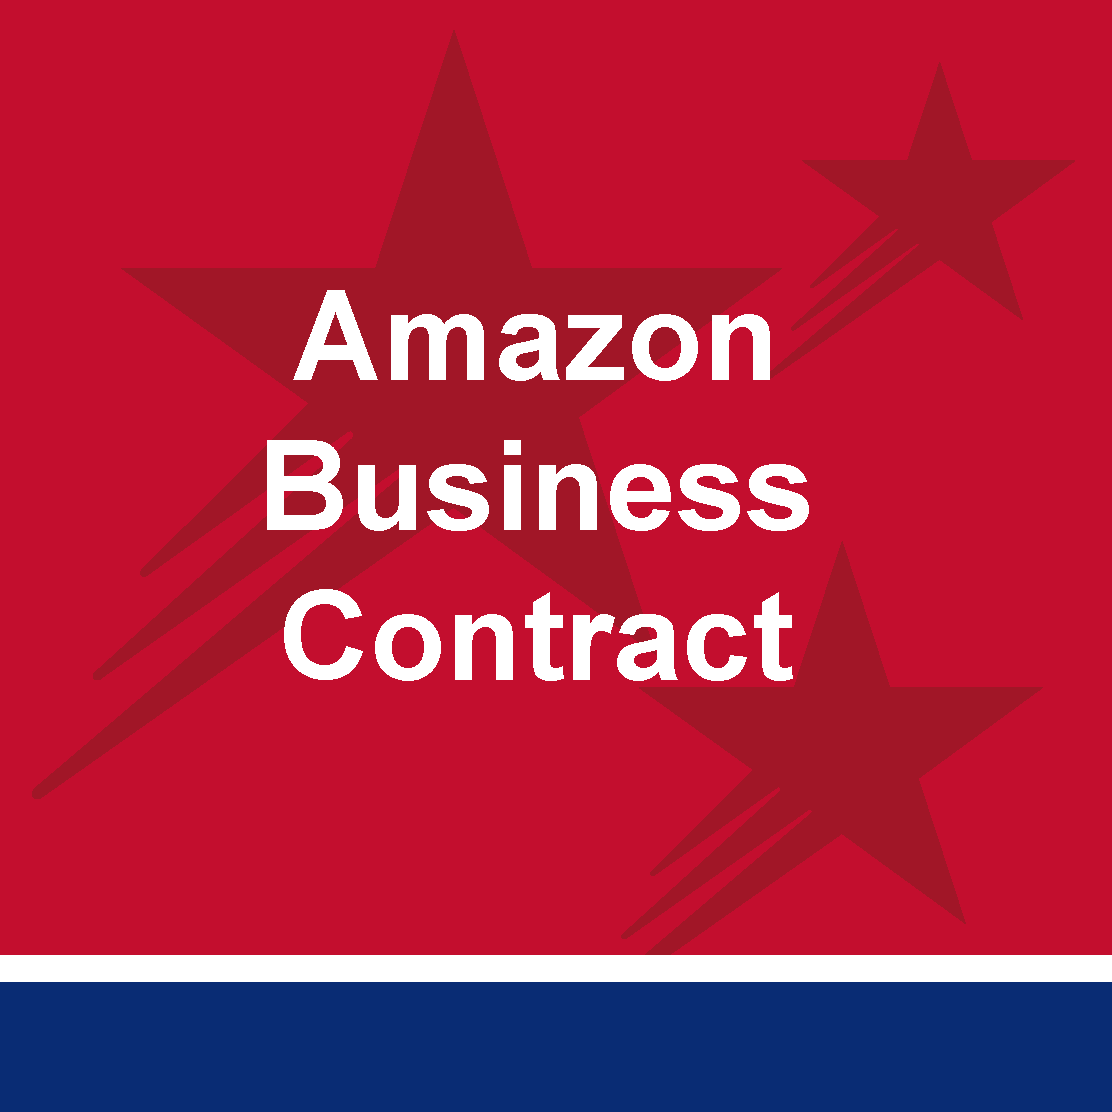 Amazon Busines Contract Button